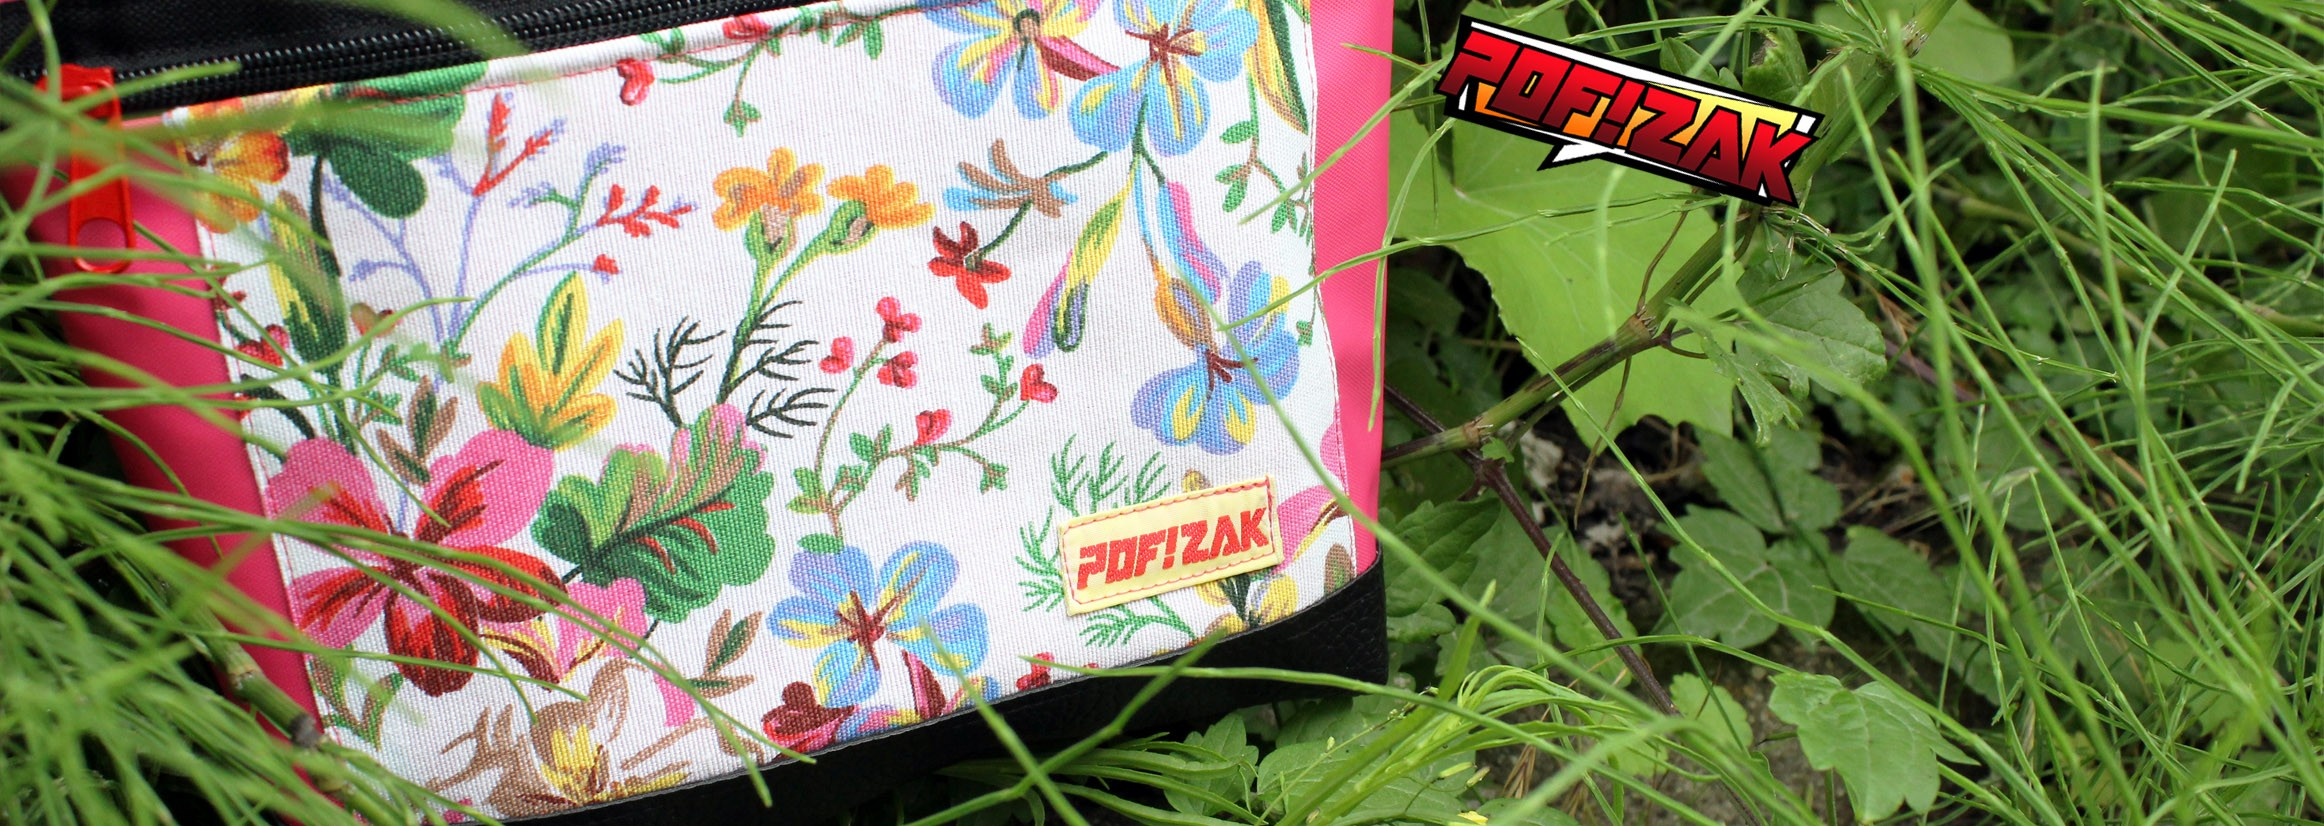 Bouldering Chalk Bag Floral Pink - Inspired by nature